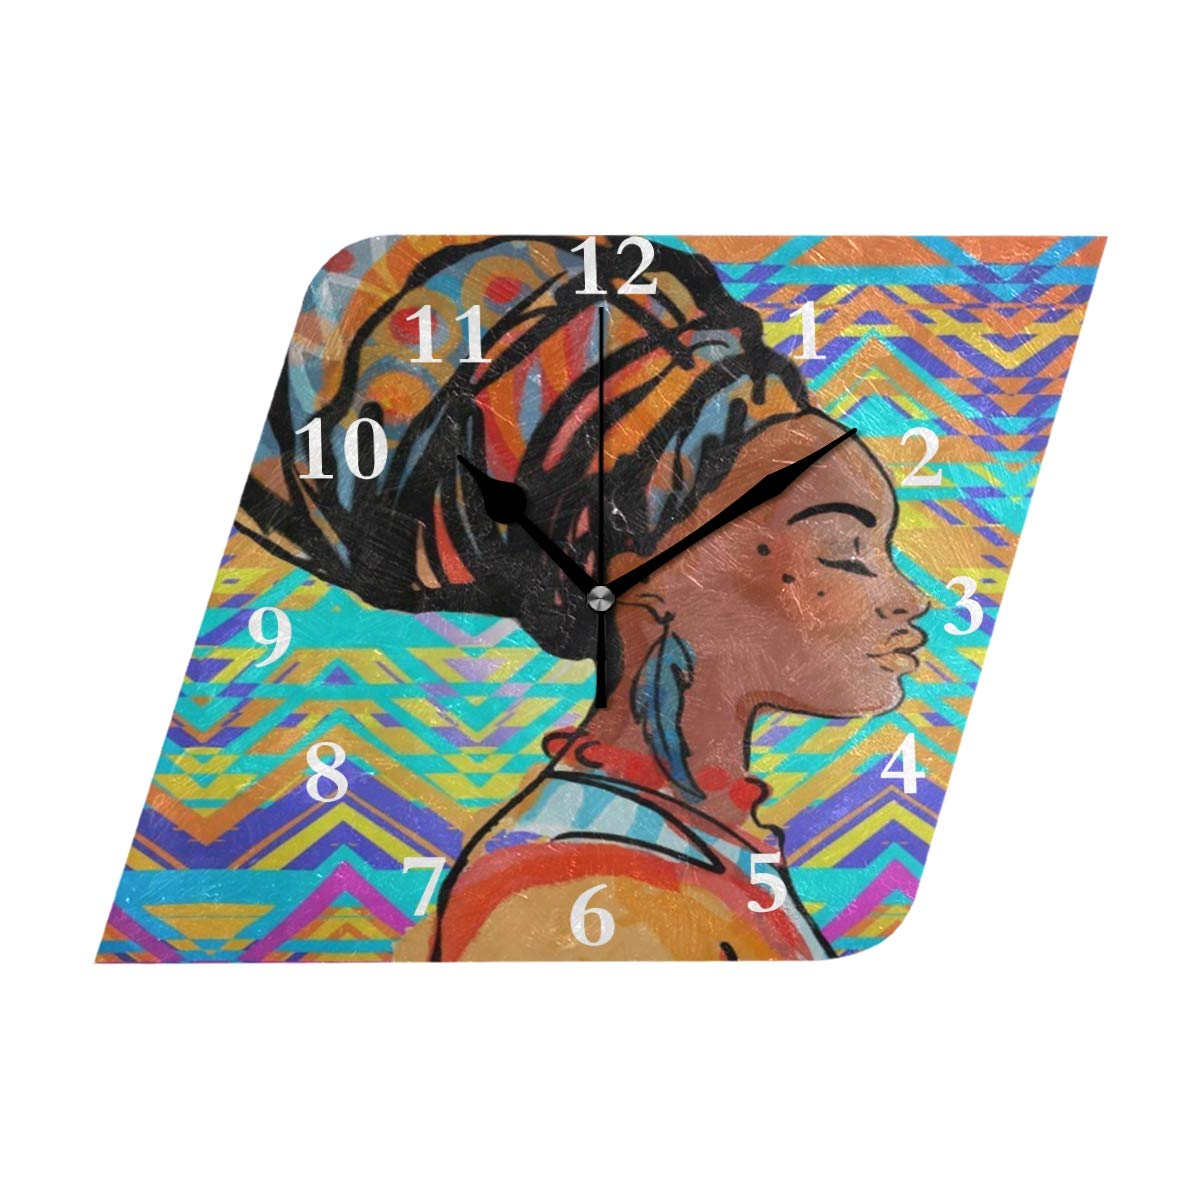 HU MOVR Wall Clock African Woman Vintage Silent Non Ticking Decorative Diamond Digital Clocks Indoor Outdoor Kitchen Bedroom Living Room